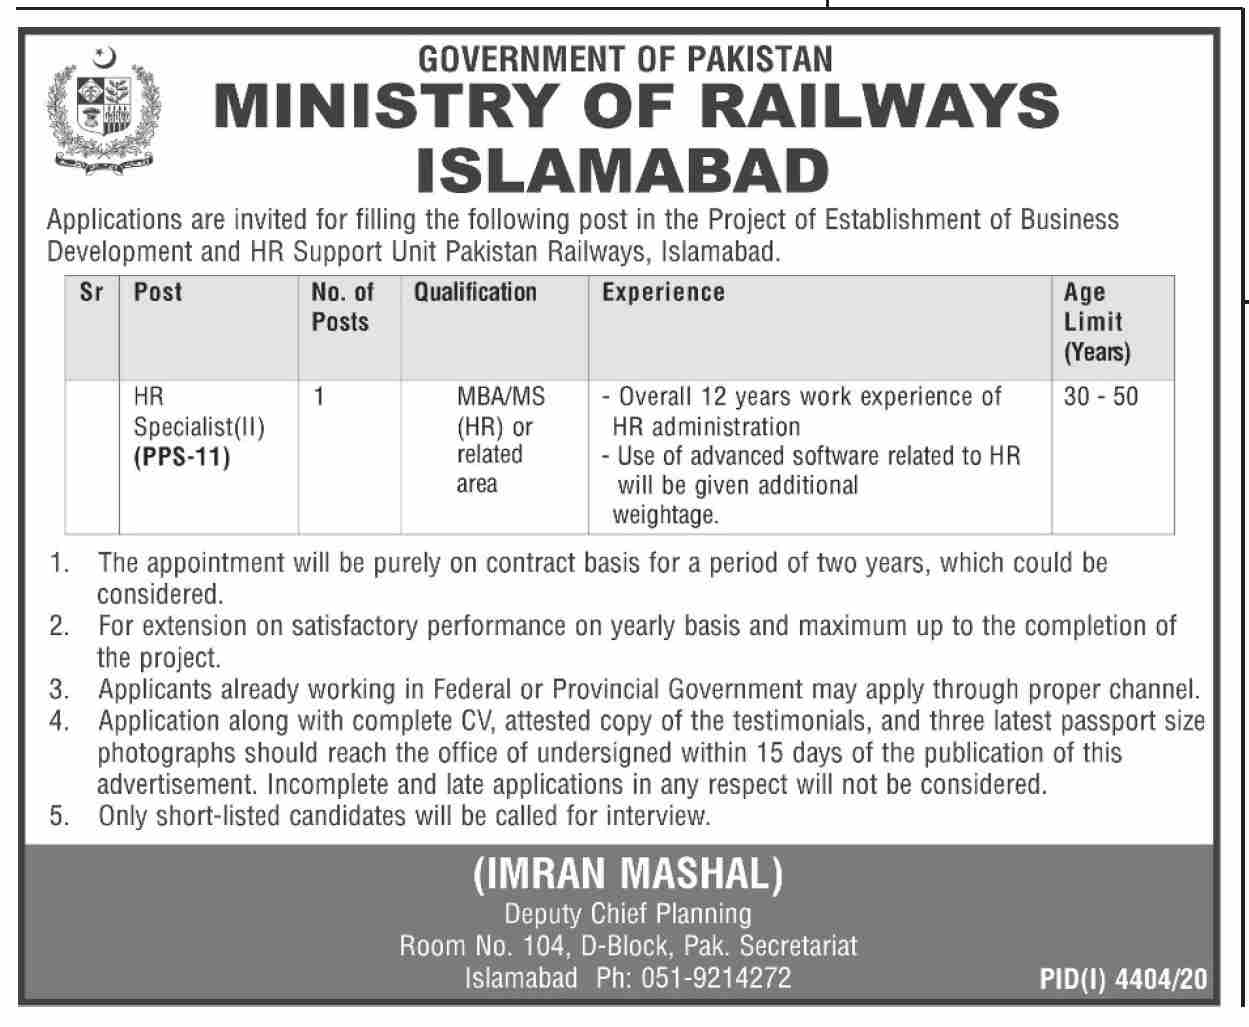 Ministry of Railways Islamabad Government of Pakistan Jobs February 2021